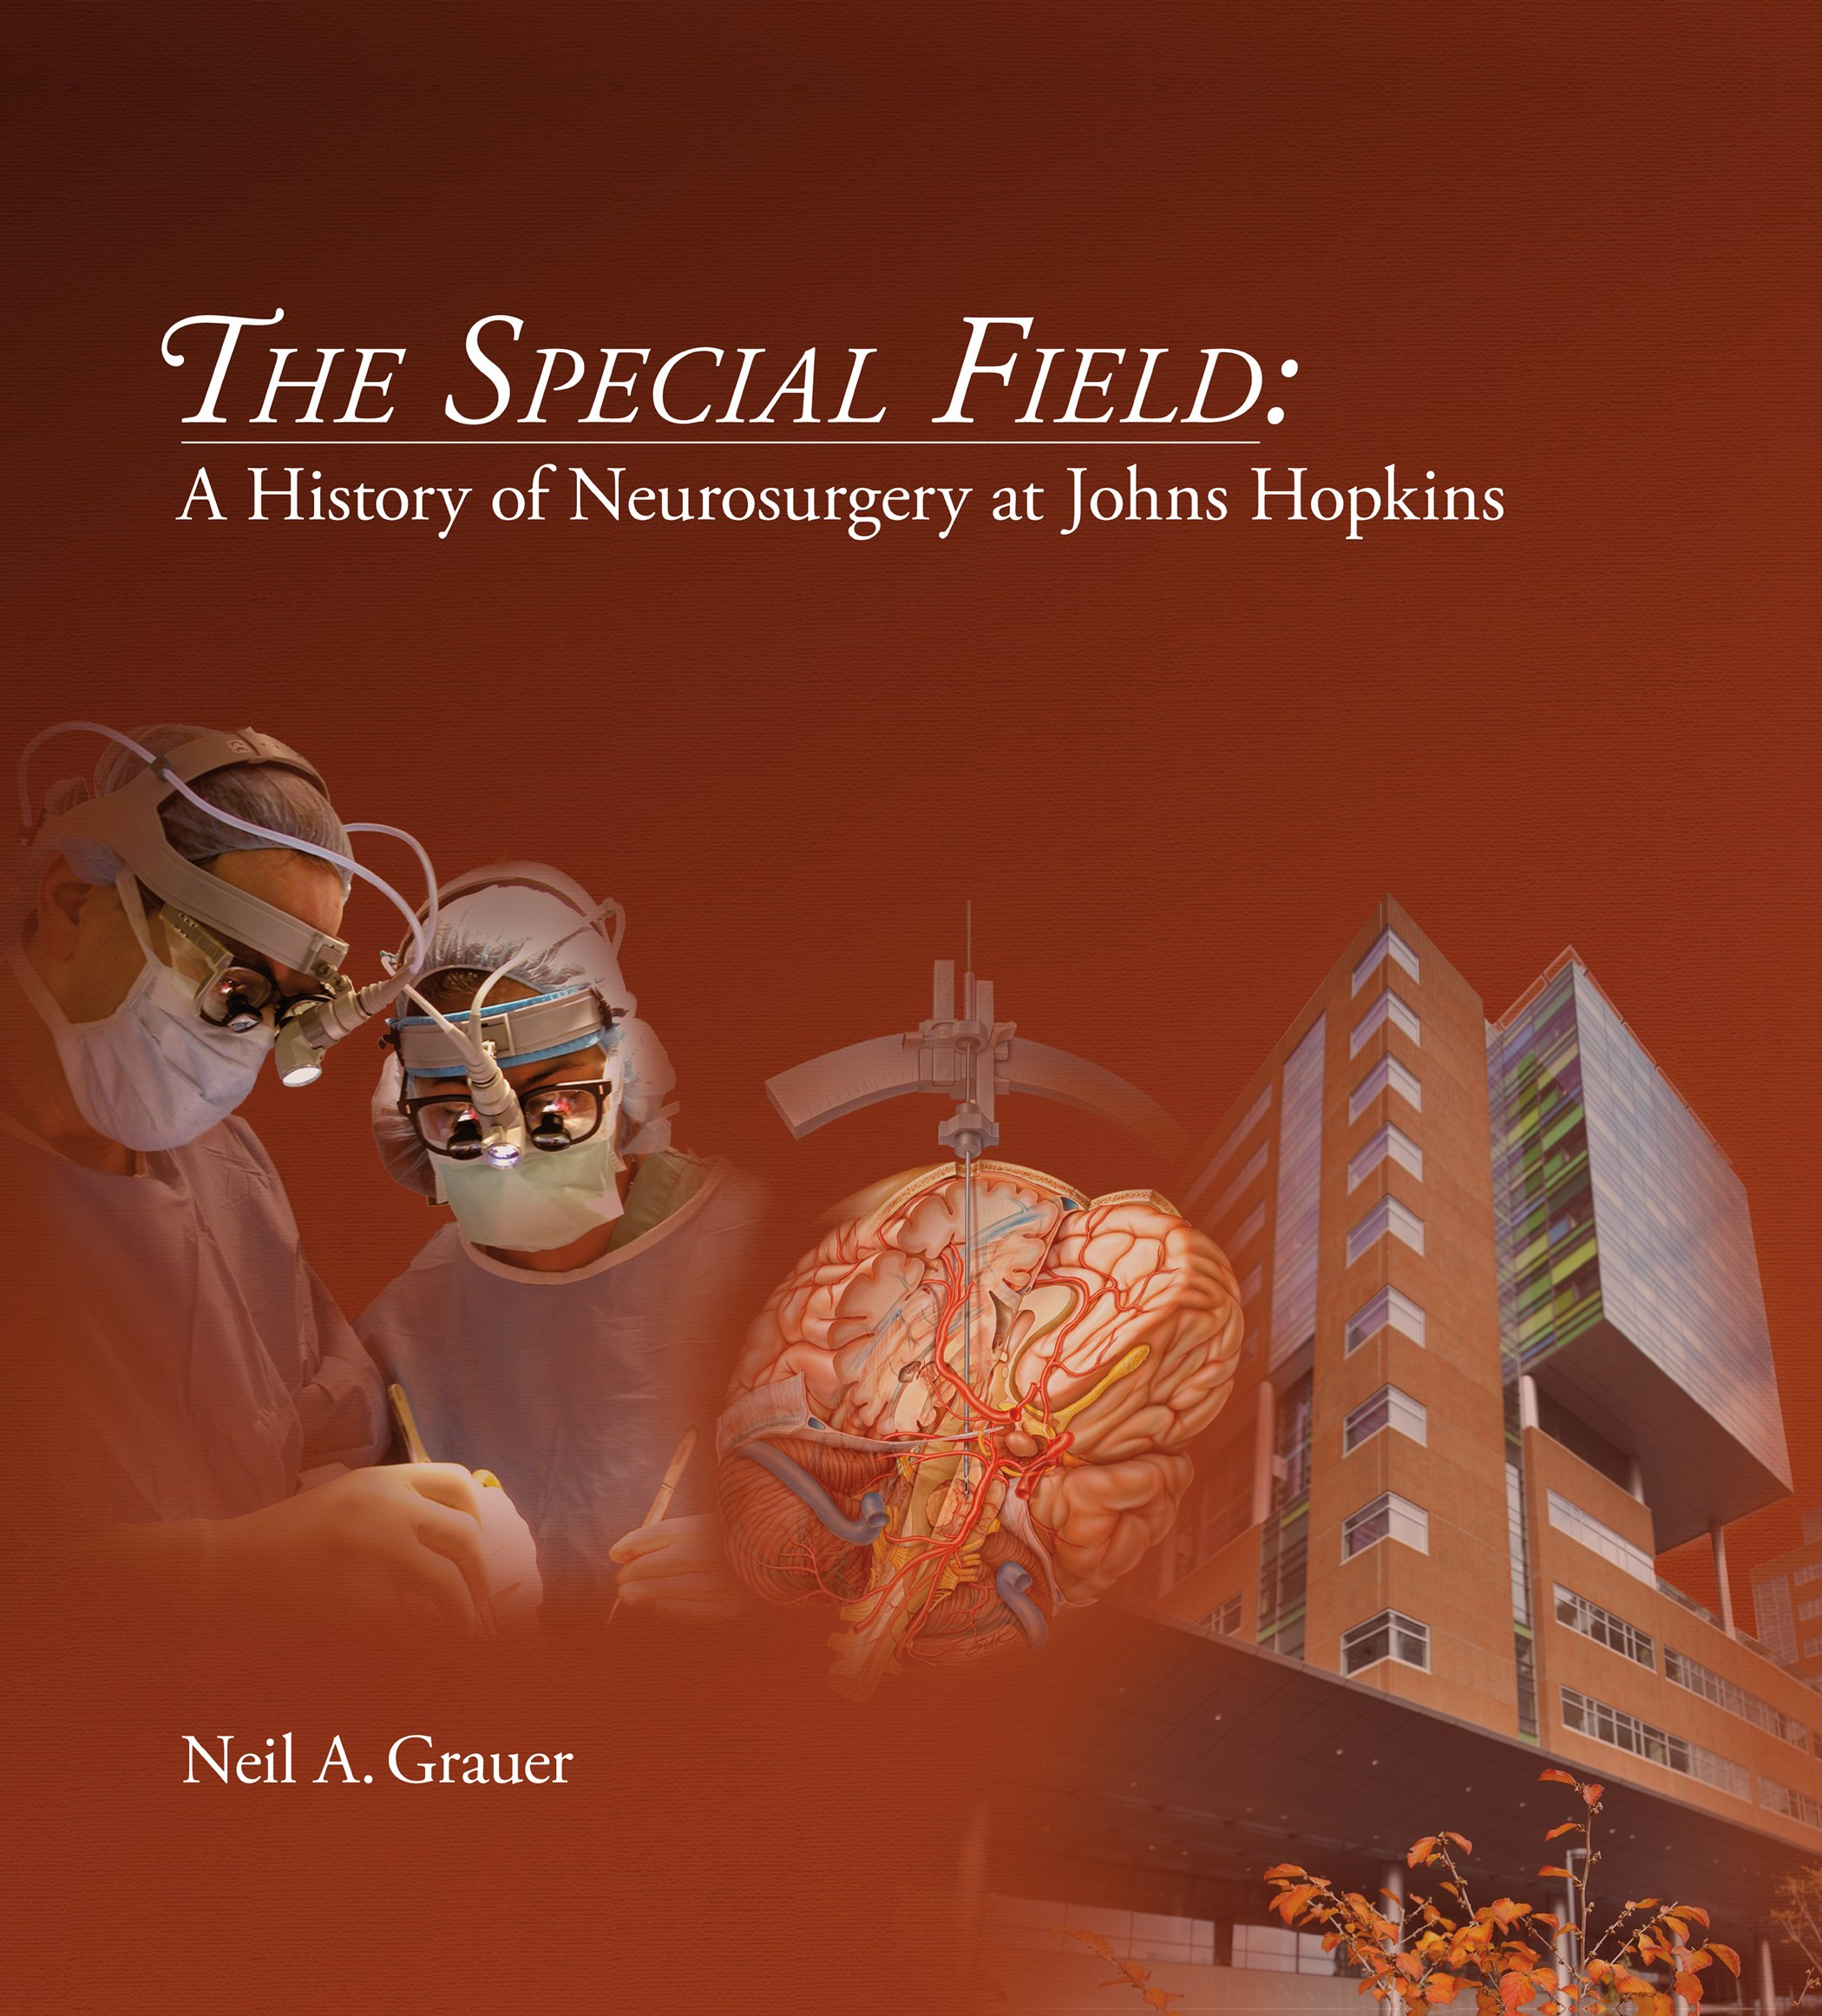 The Special Field: A History of Neurosurgery at Johns